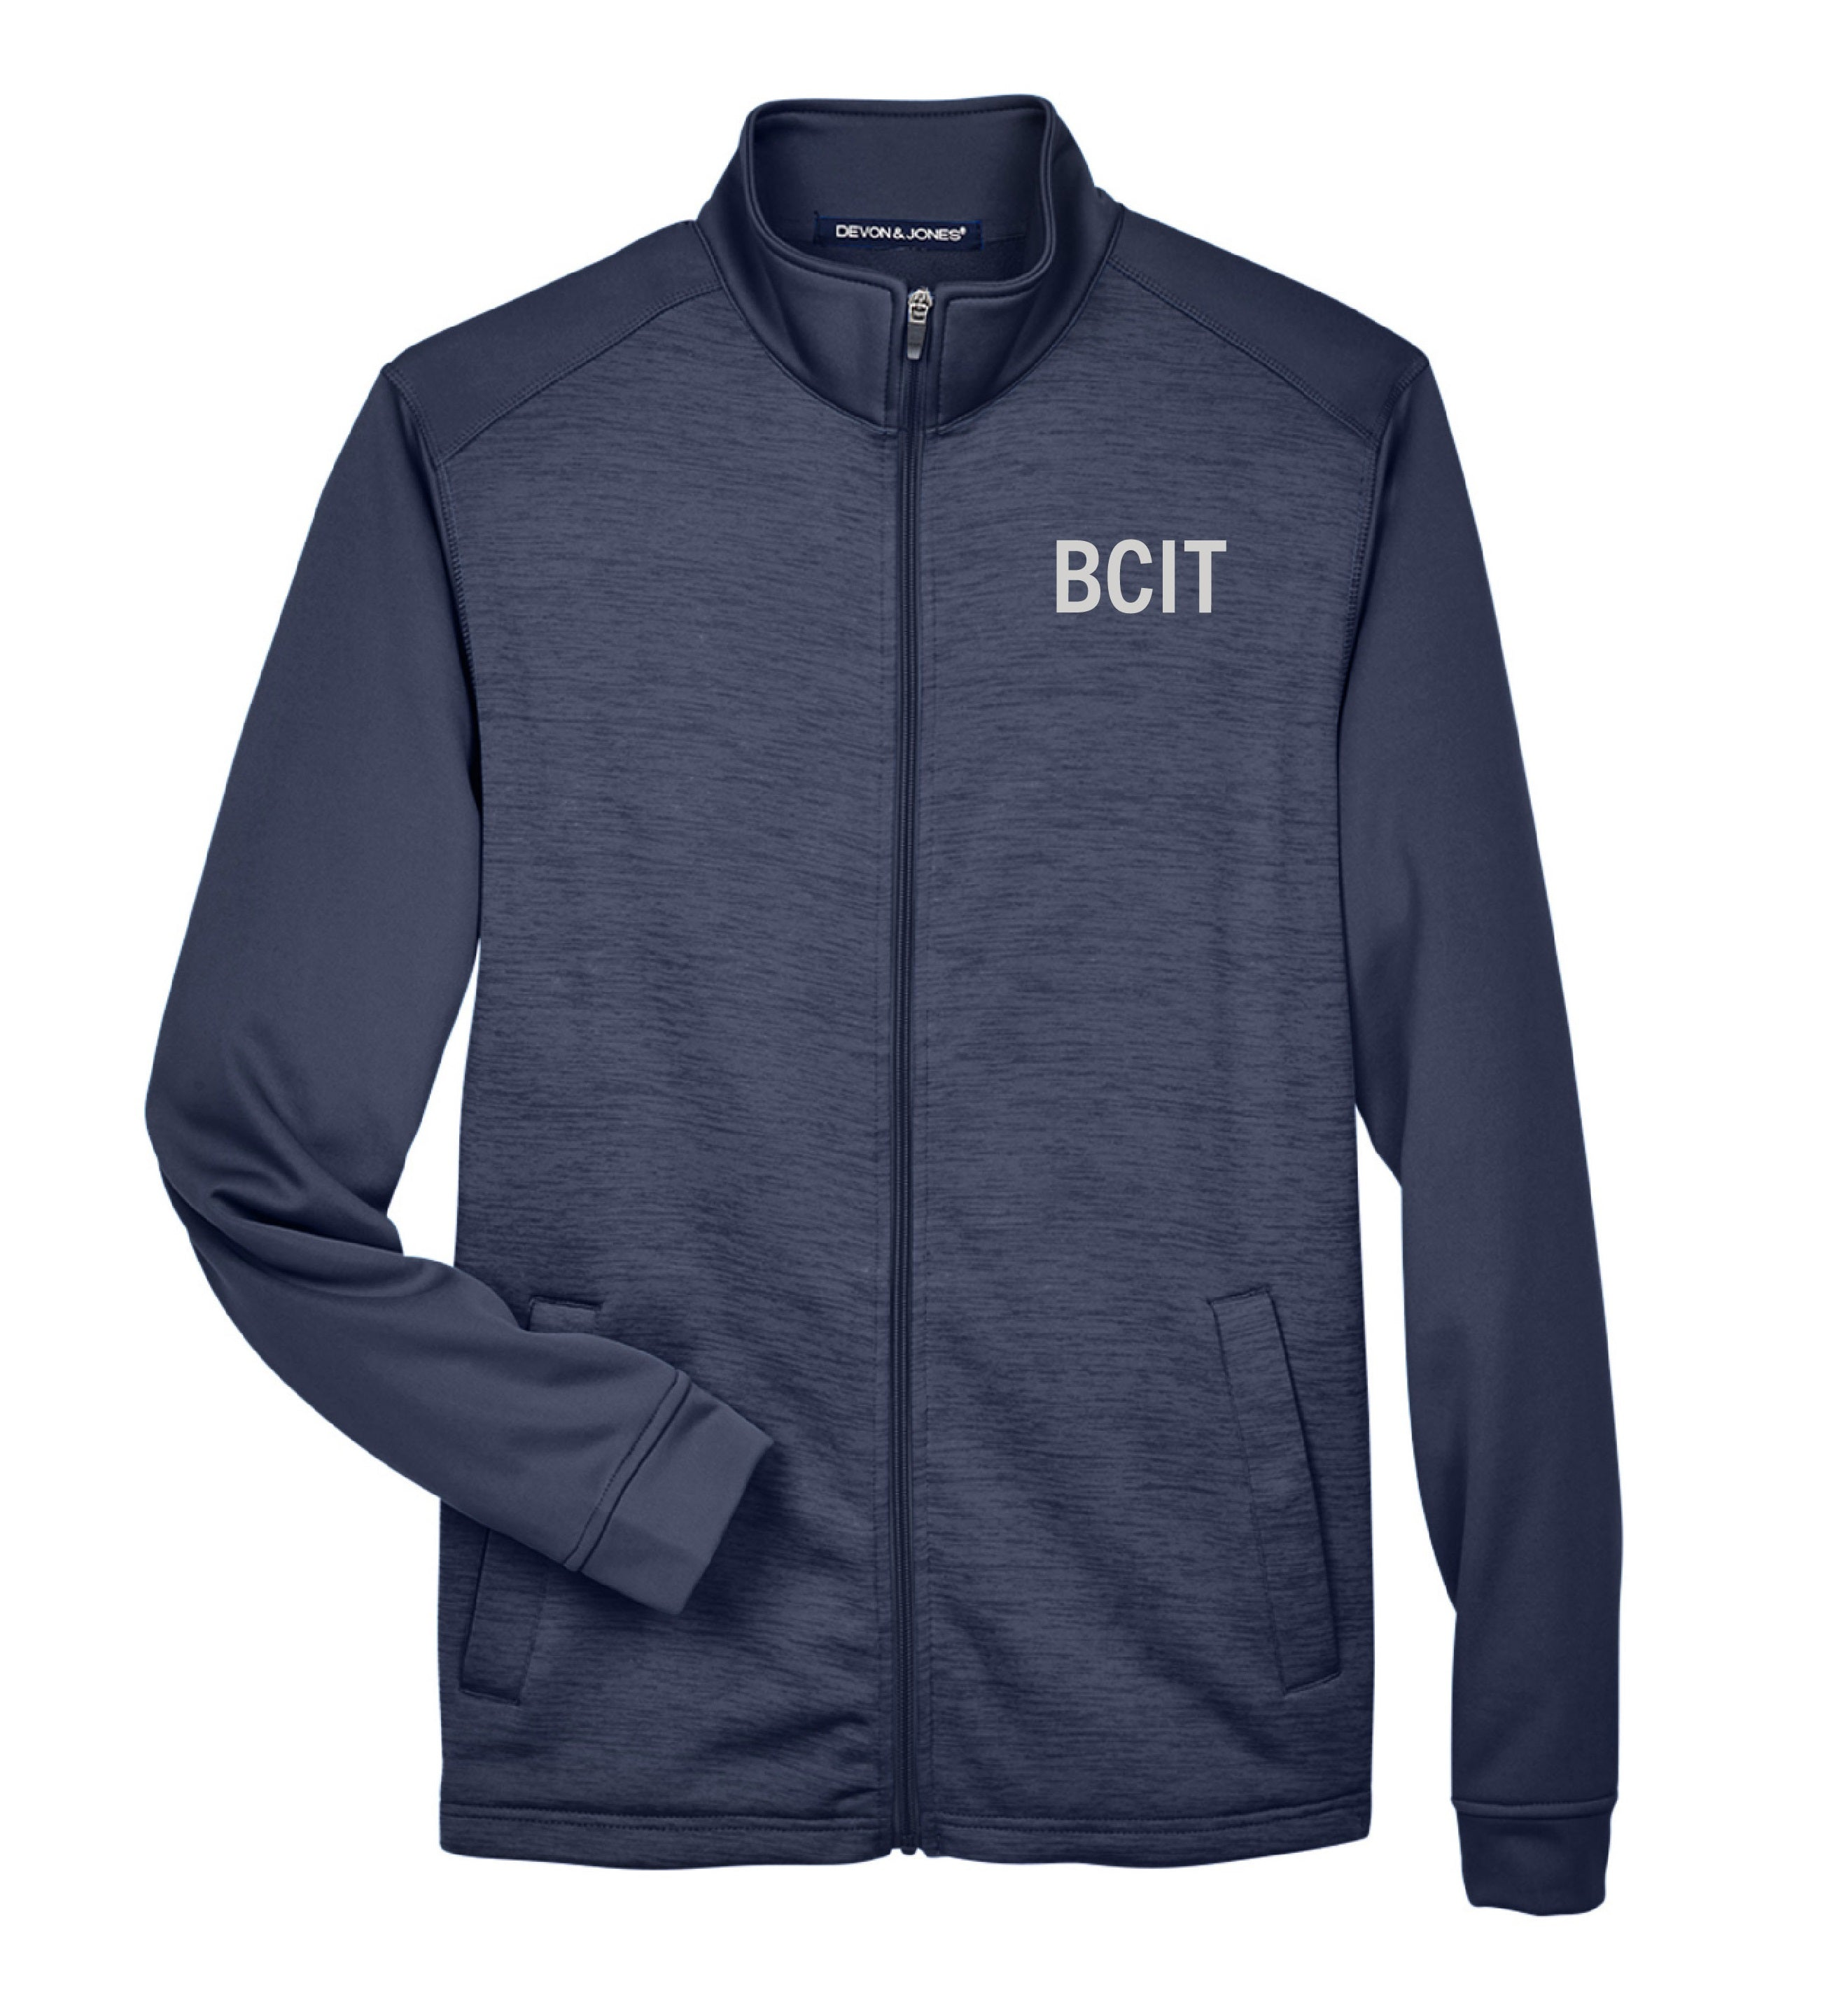 BCIT Fleece Full-Zip Jacket